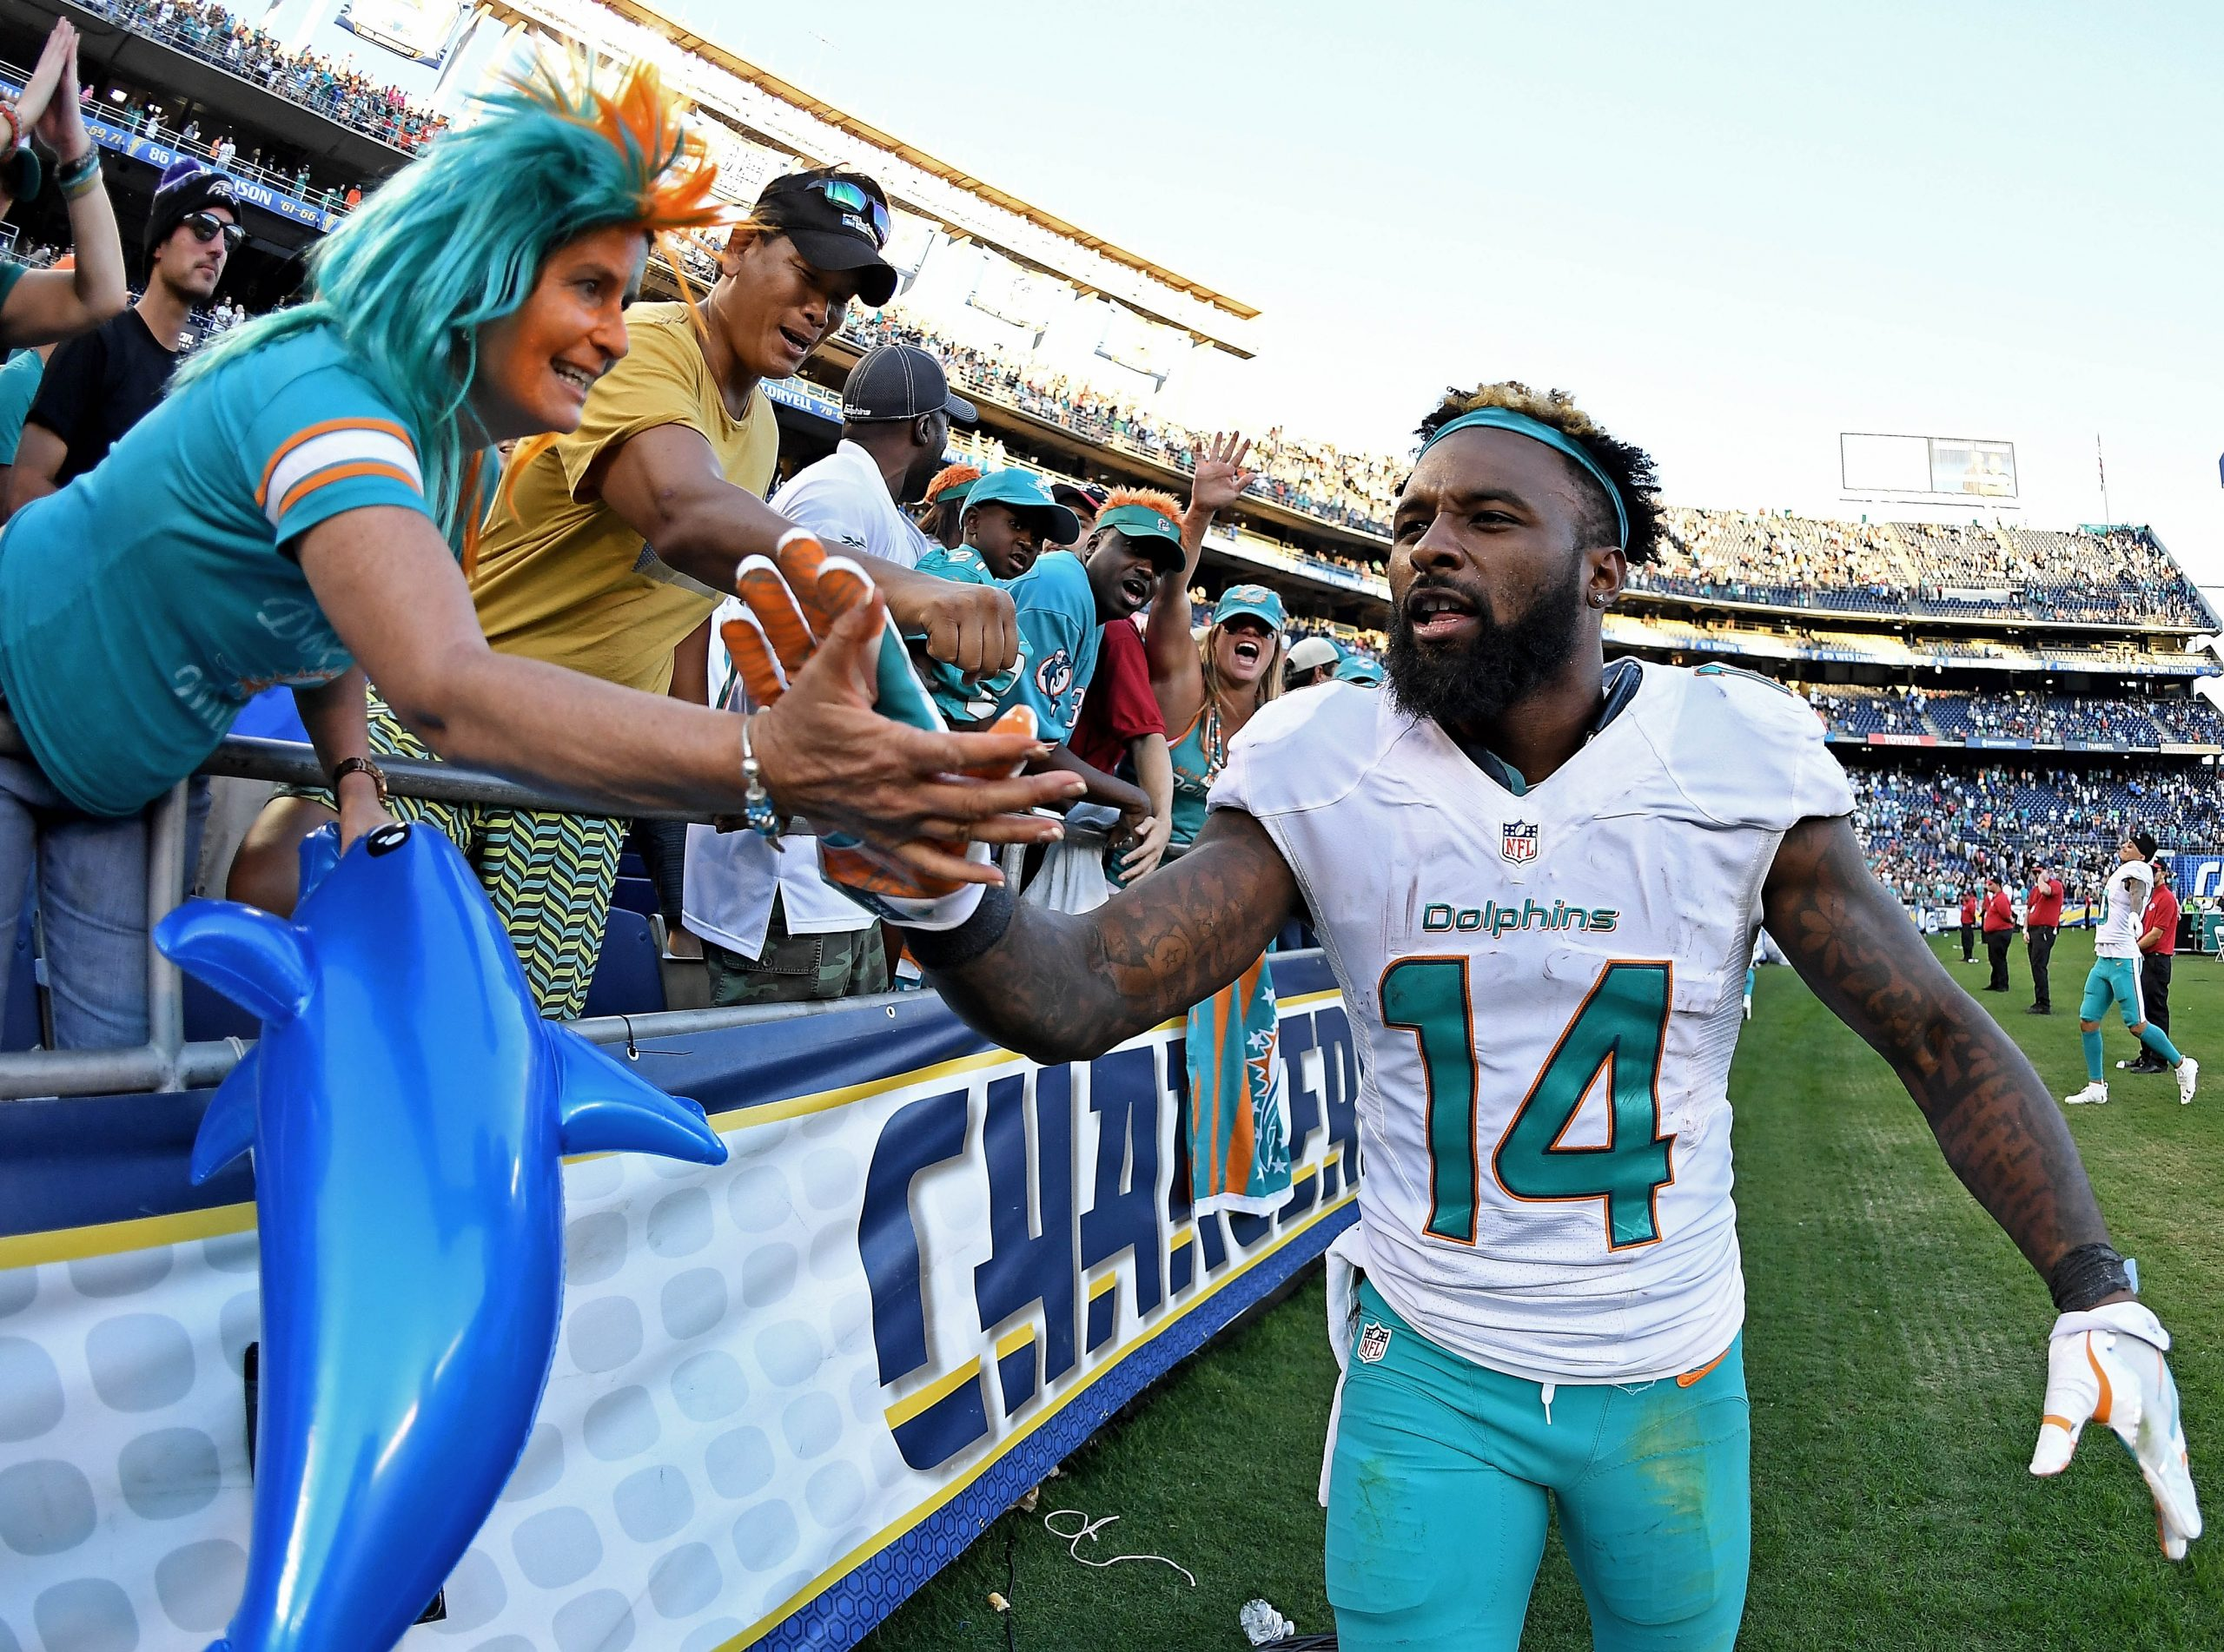 Five-Game Winning Streak Earns Miami Dolphins Respect From with regard to Miami Dolphins In Super Bowl